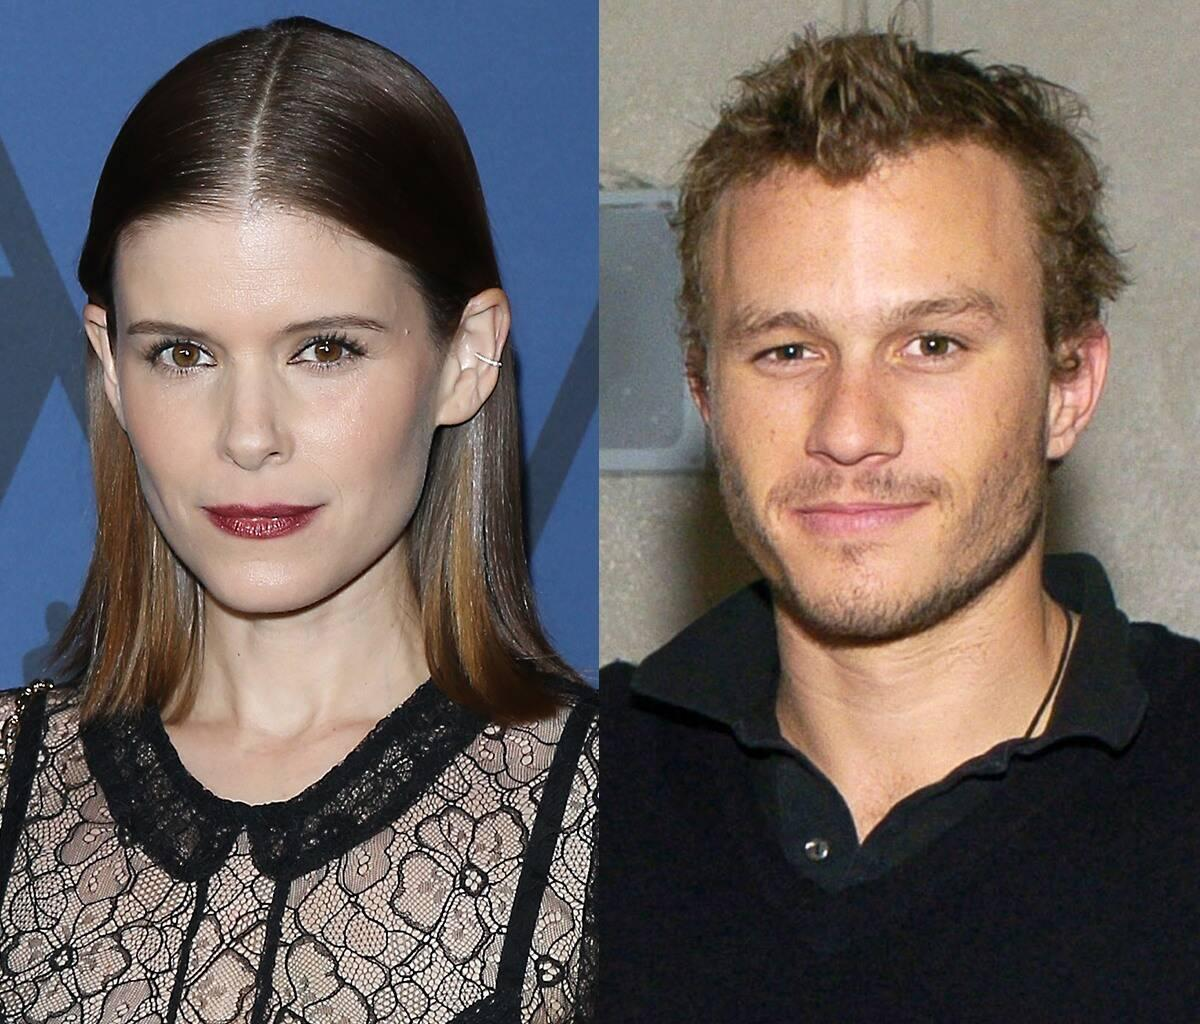 Kate Mara Opens Up About Her Experience Working With Heath Ledger On 'Brokeback Mountain' - Says He Took Her 'Under His Wing'